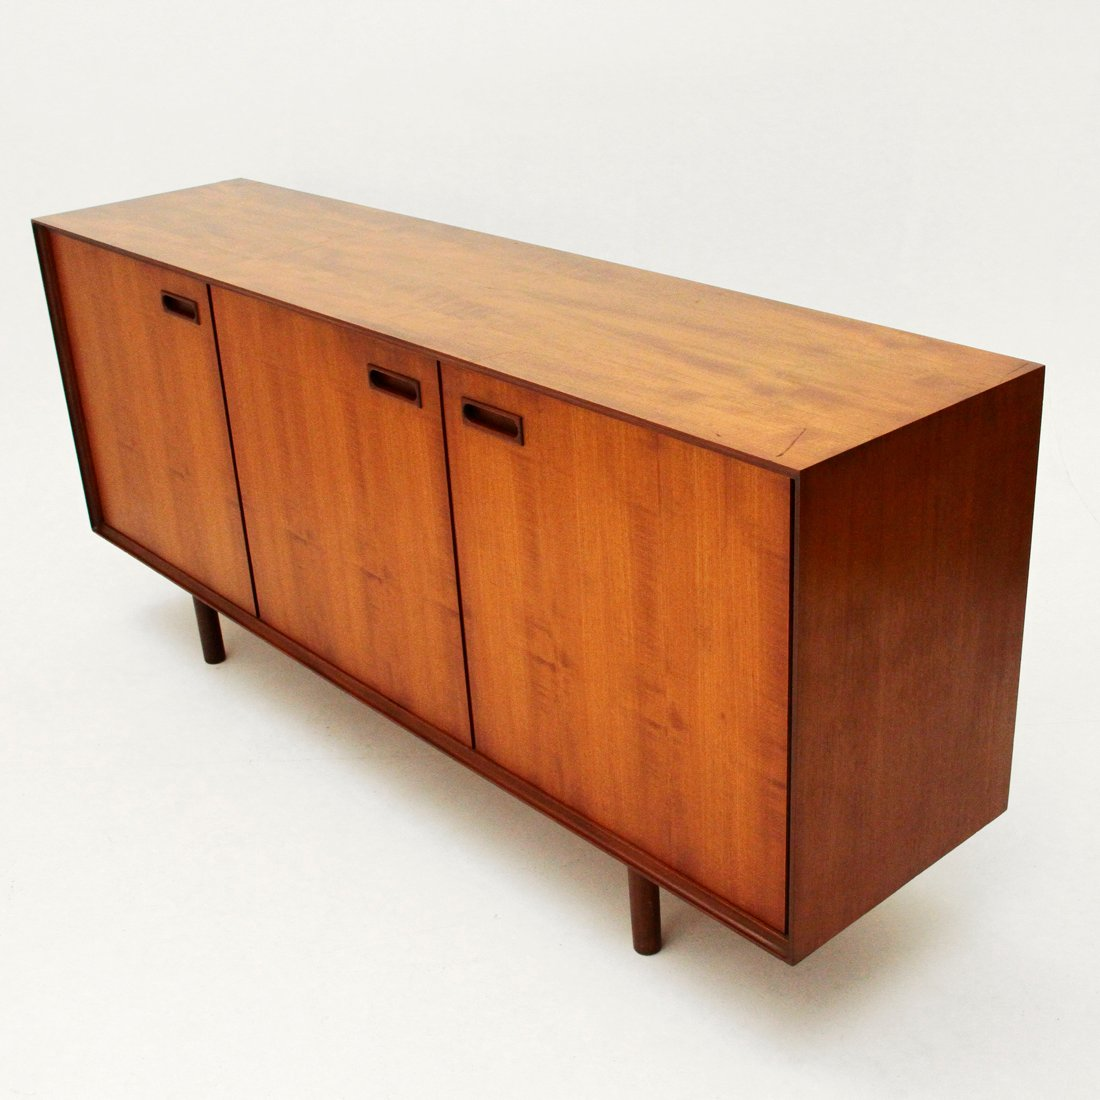 Mid century italian sideboard 1960s for sale at pamono - Sideboard mid century ...